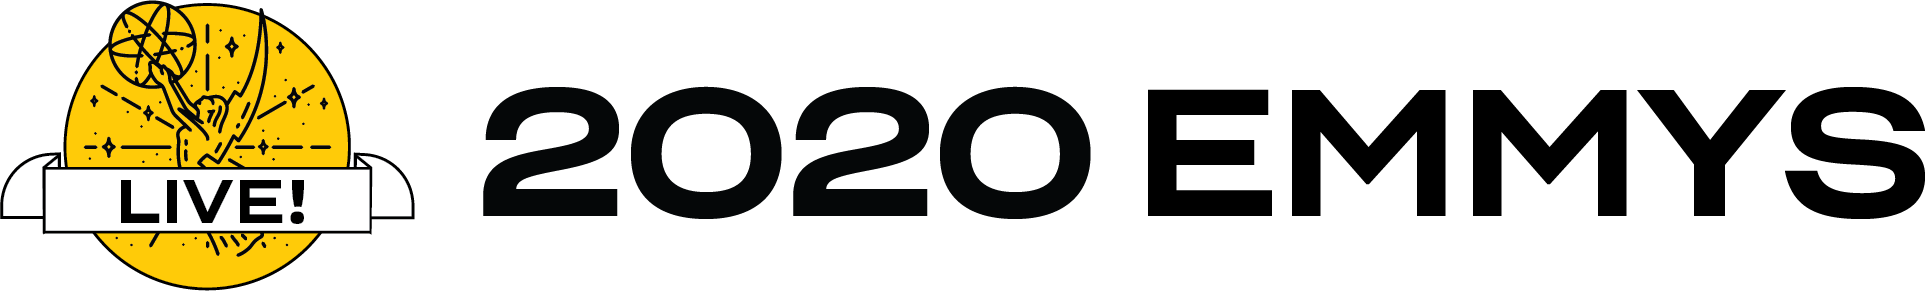 Emmys 2020 Homepage Logo